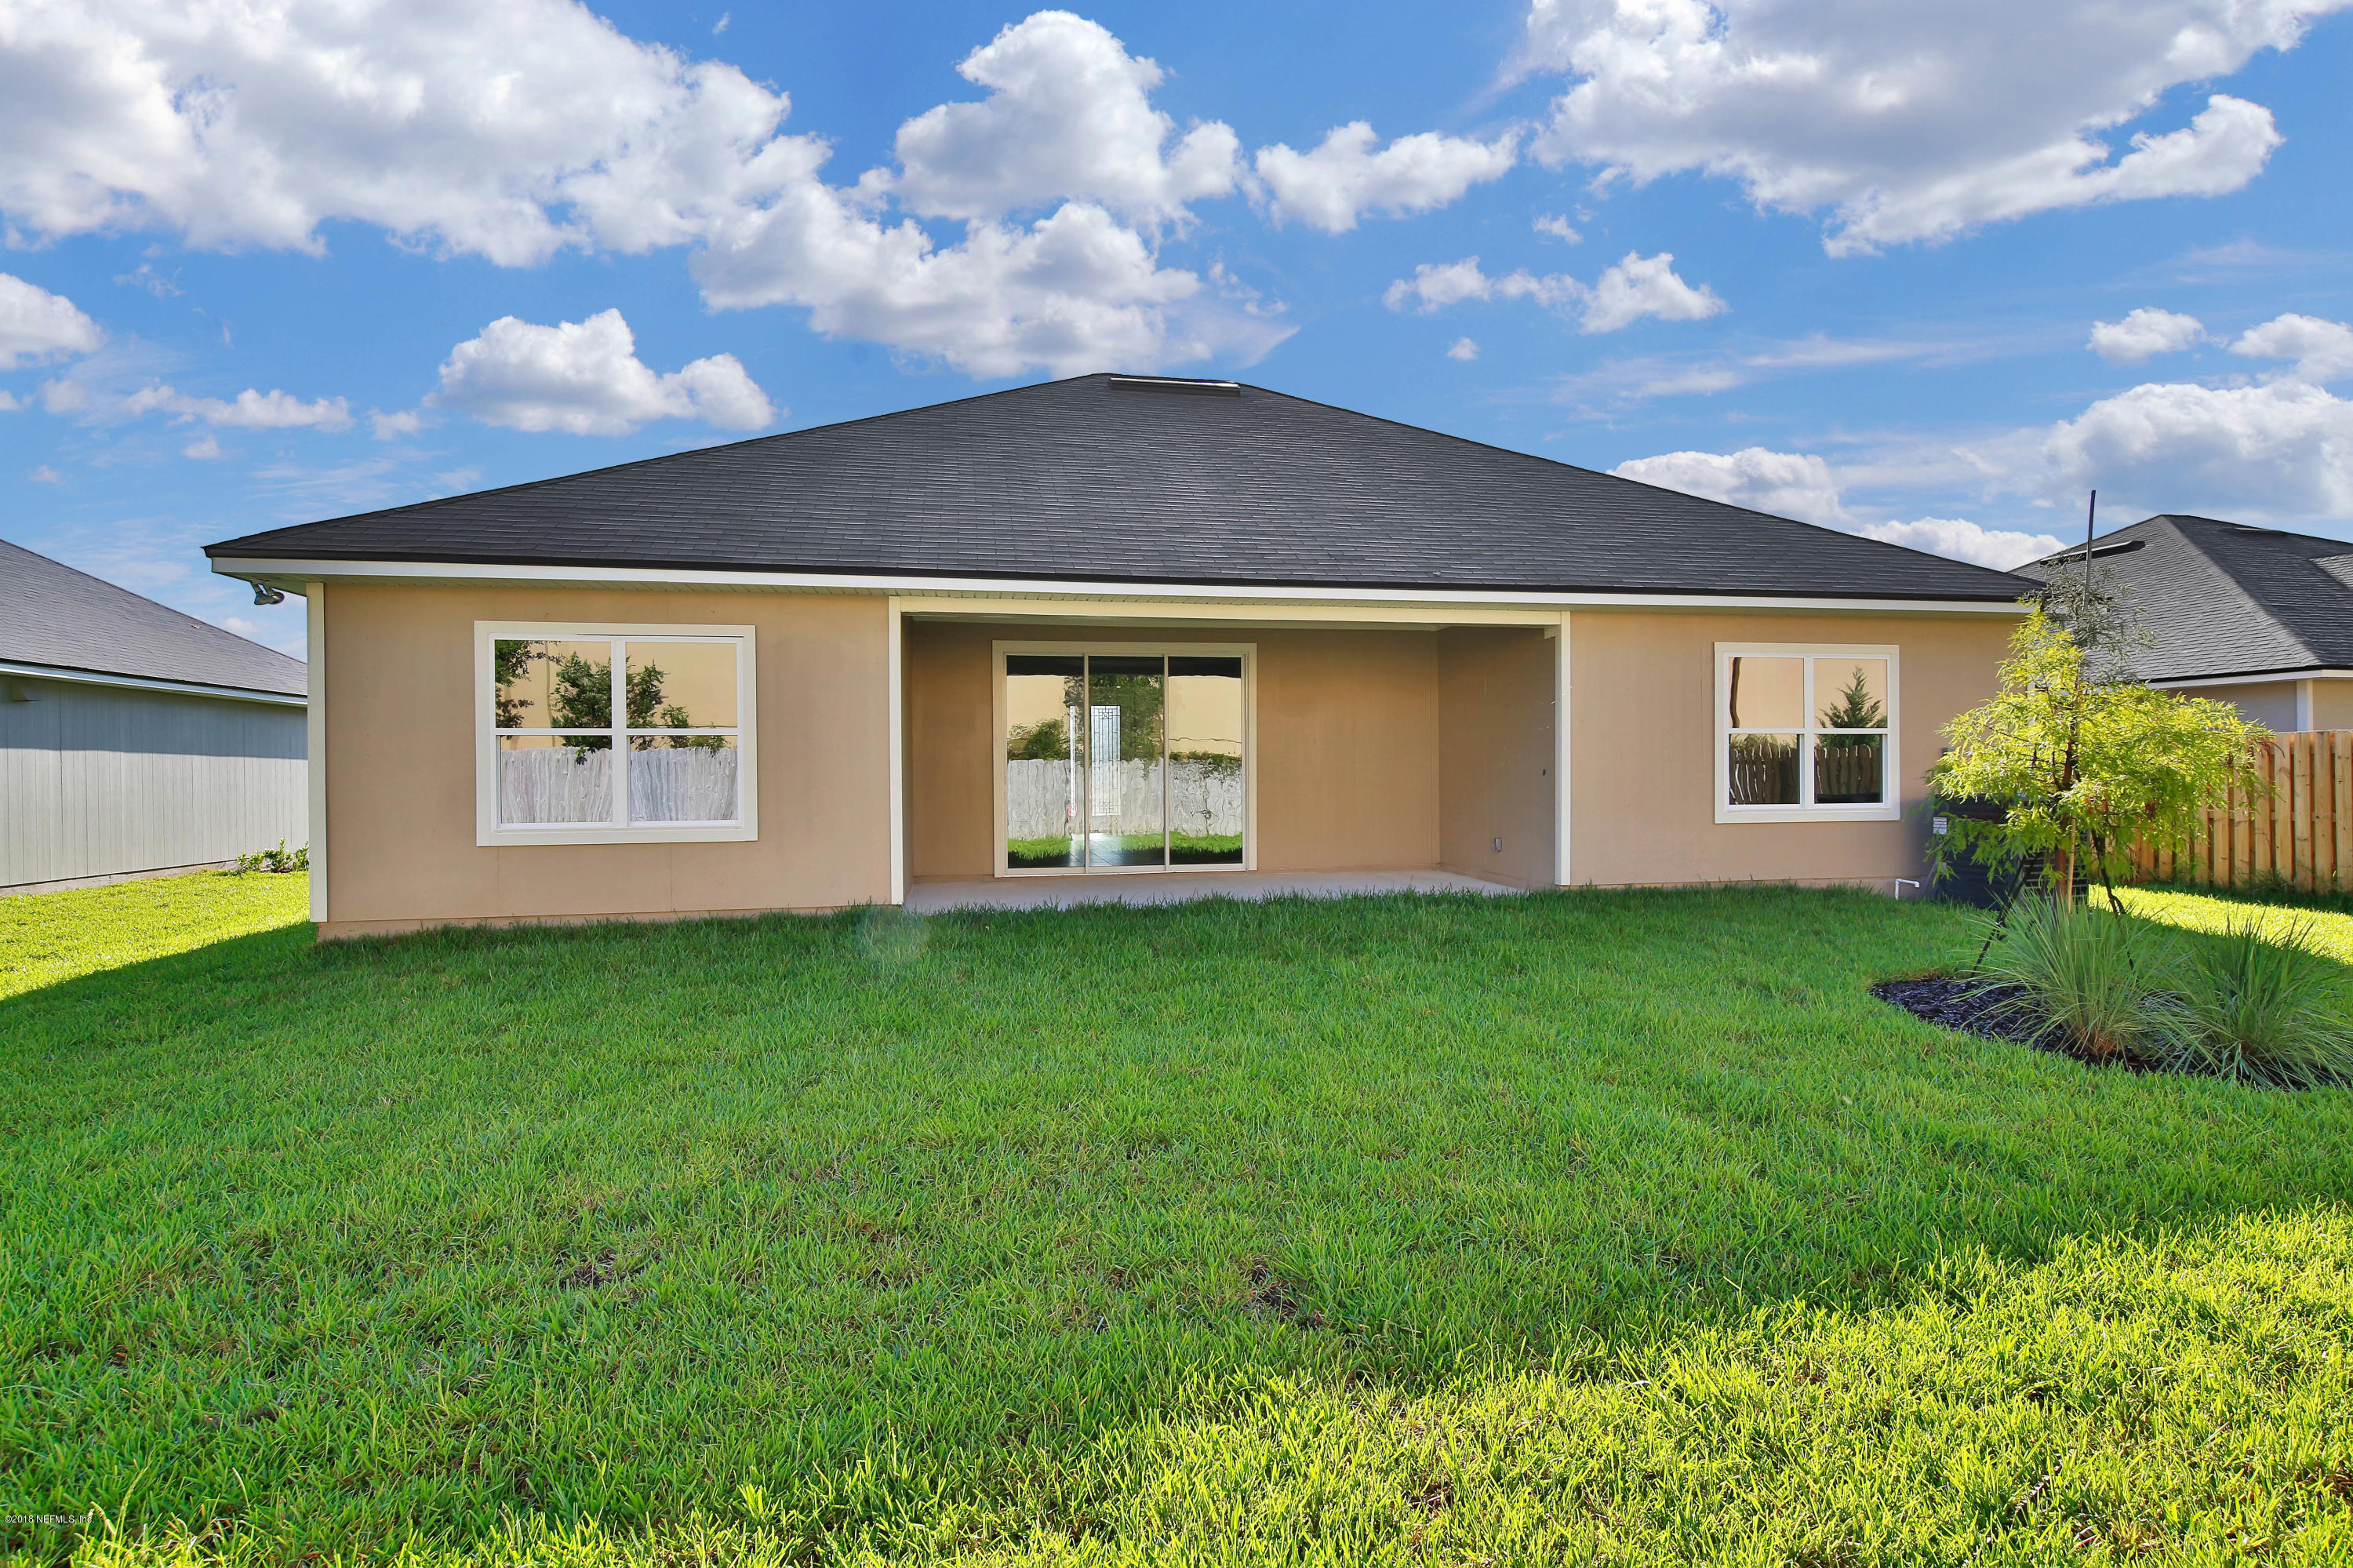 10858 STANTON HILLS, JACKSONVILLE, FLORIDA 32222, 3 Bedrooms Bedrooms, ,2 BathroomsBathrooms,Residential - single family,For sale,STANTON HILLS,939809